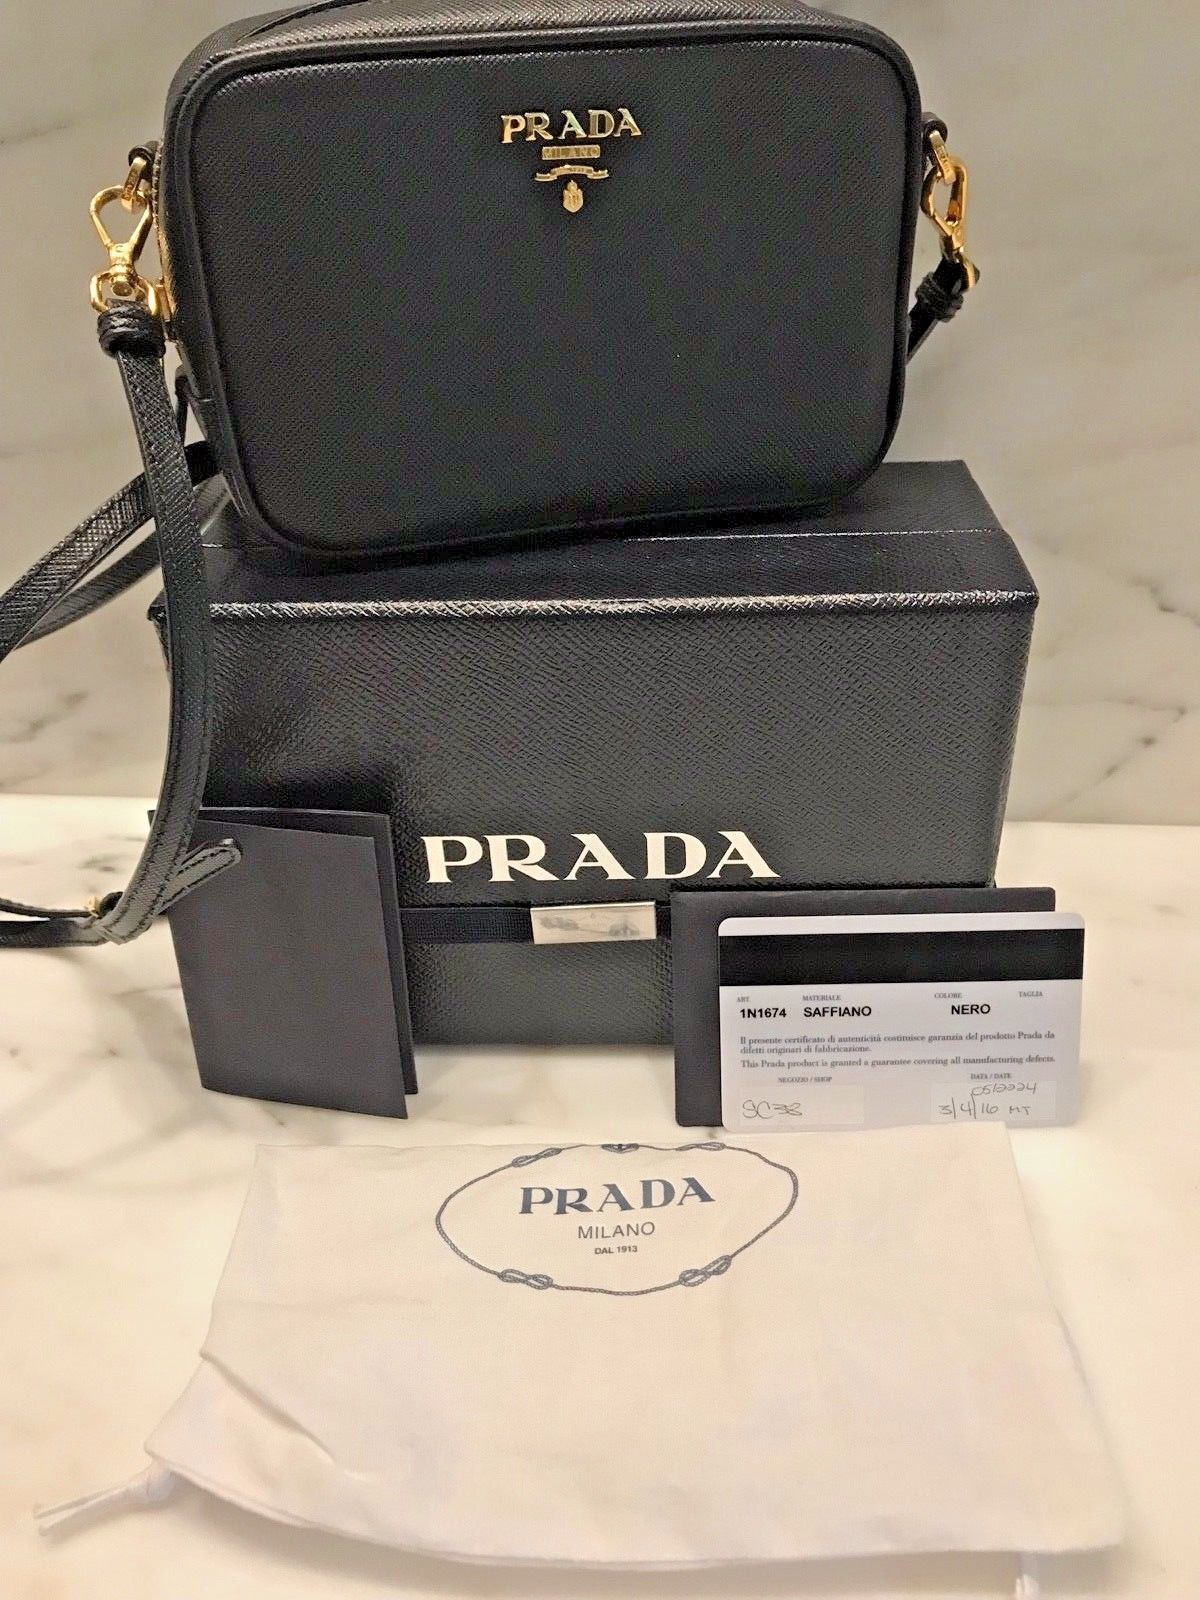 0901d6d584 Details about AUTHENTIC PRADA Black Saffiano Leather Crossbody ...